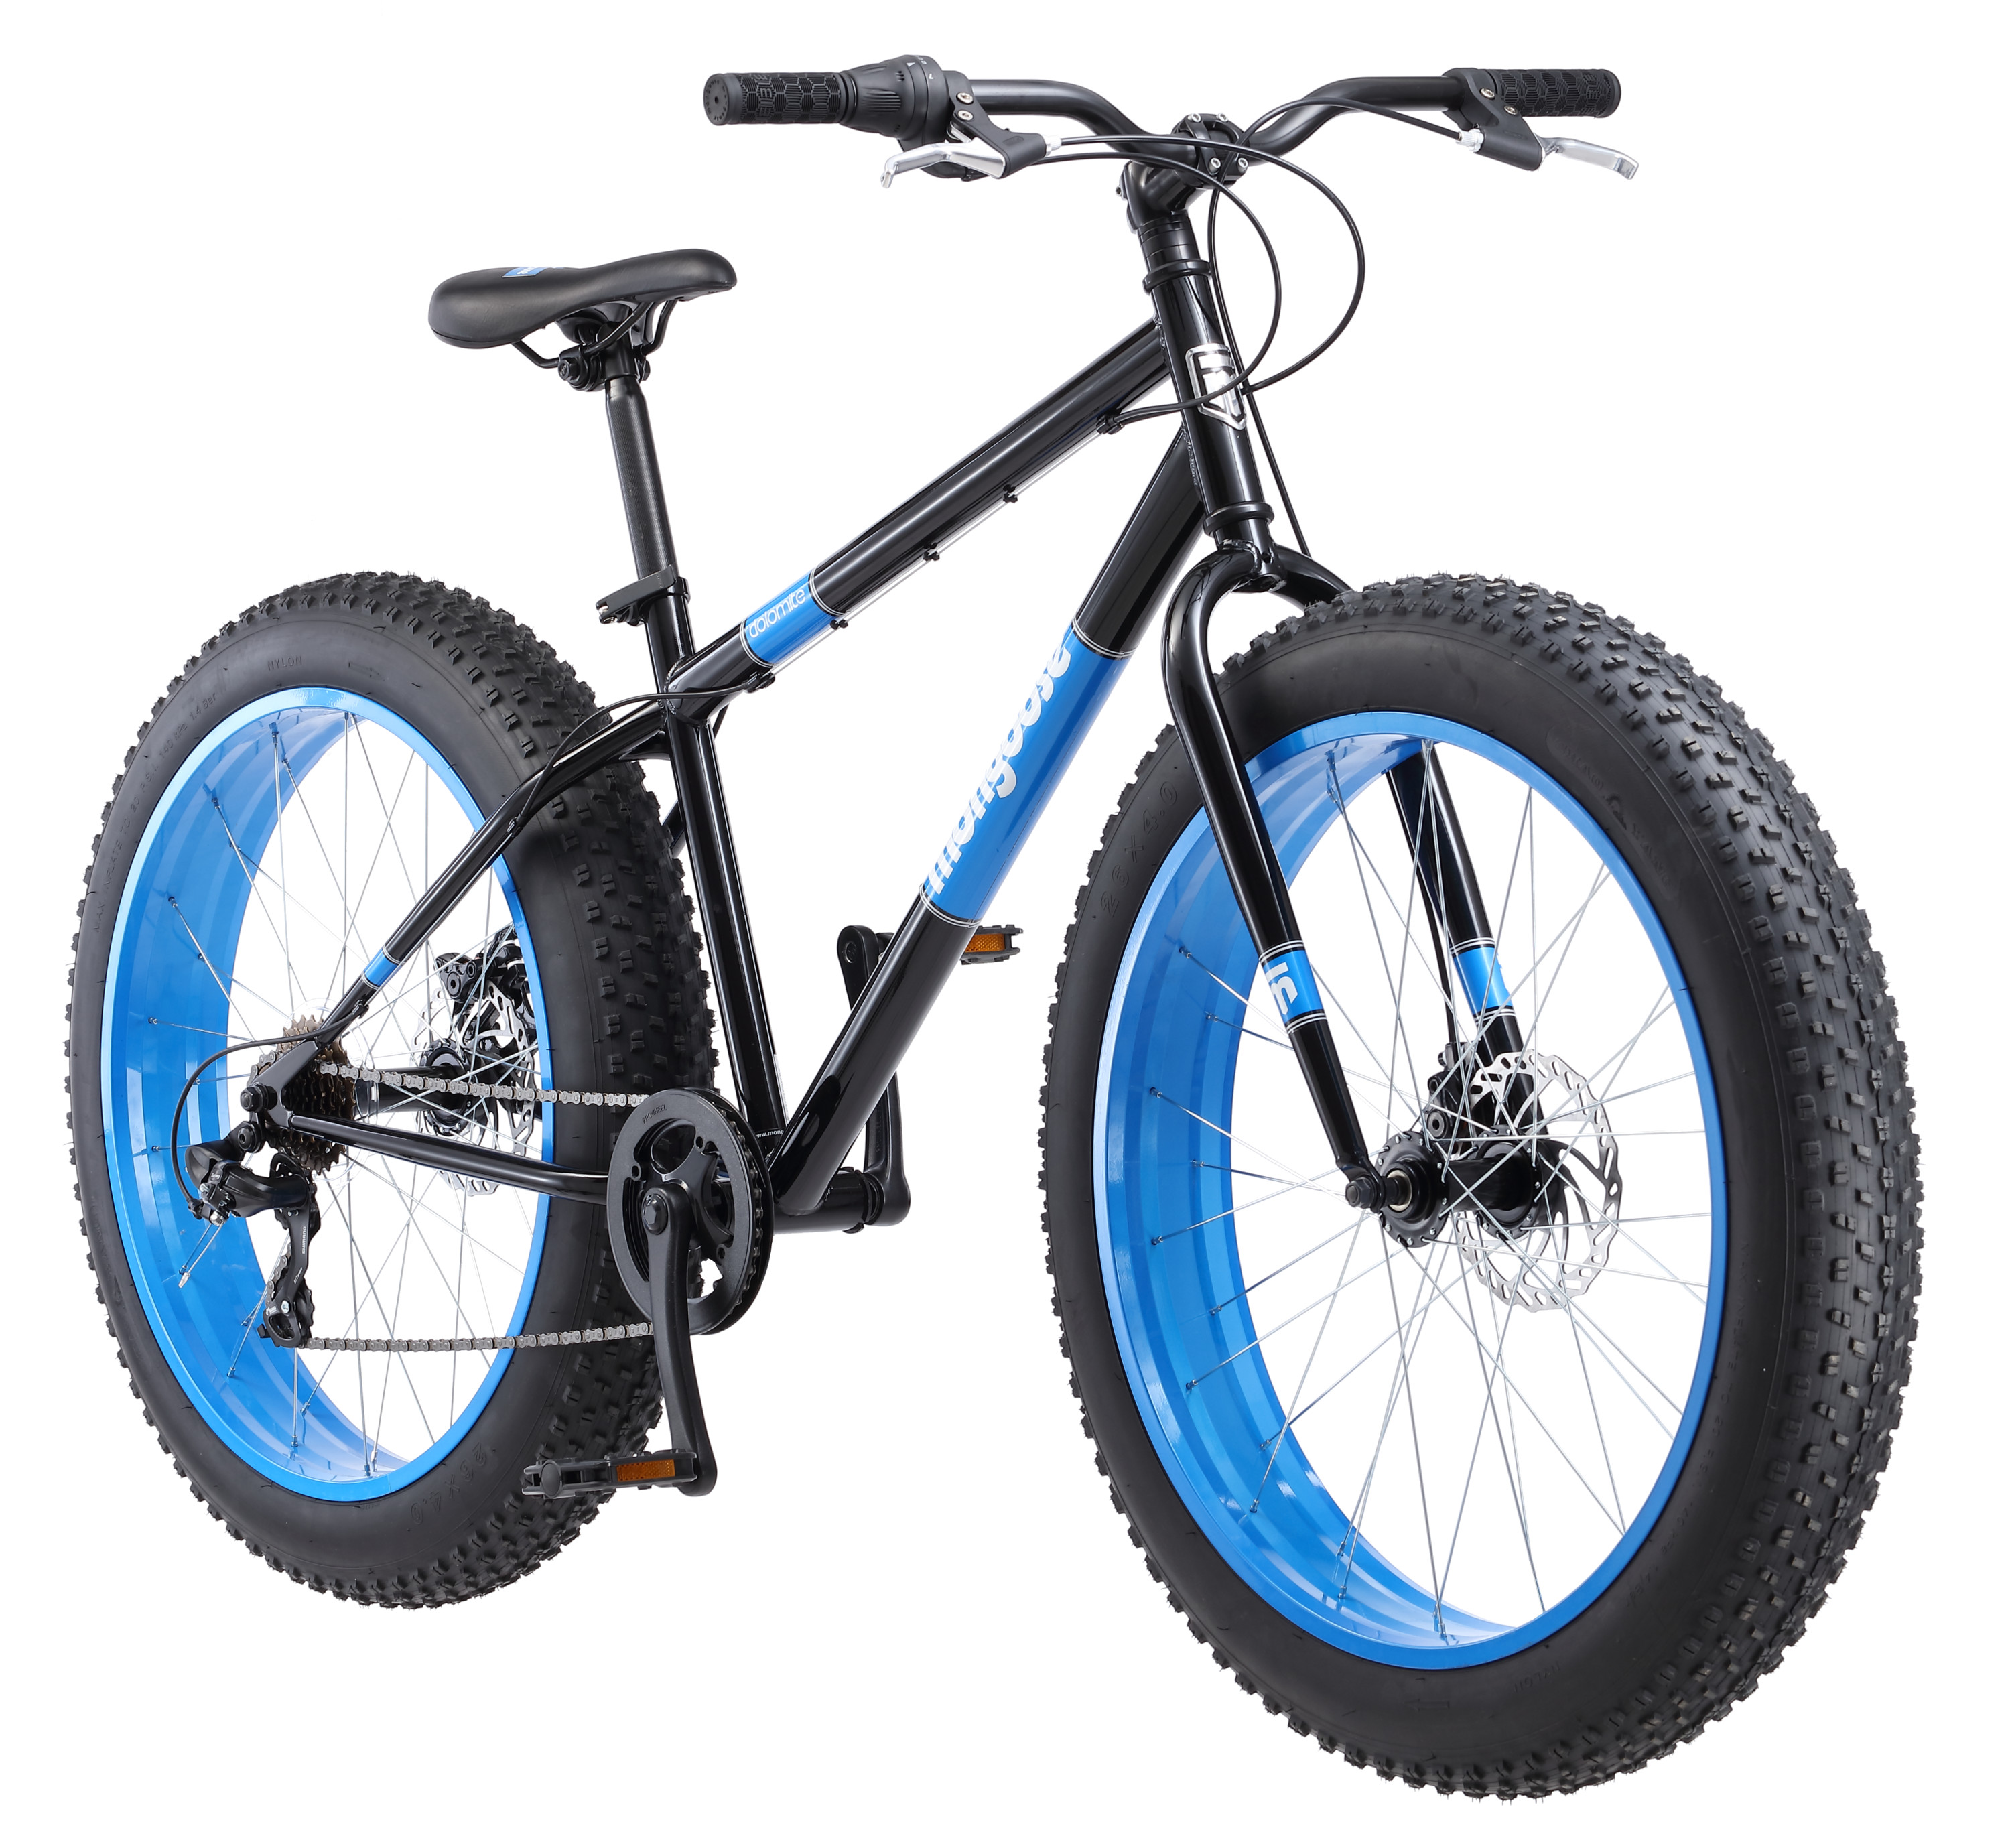 Mongoose Dolomite Men S Fat Tire Bike 26 Inch Wheels 7 Speeds